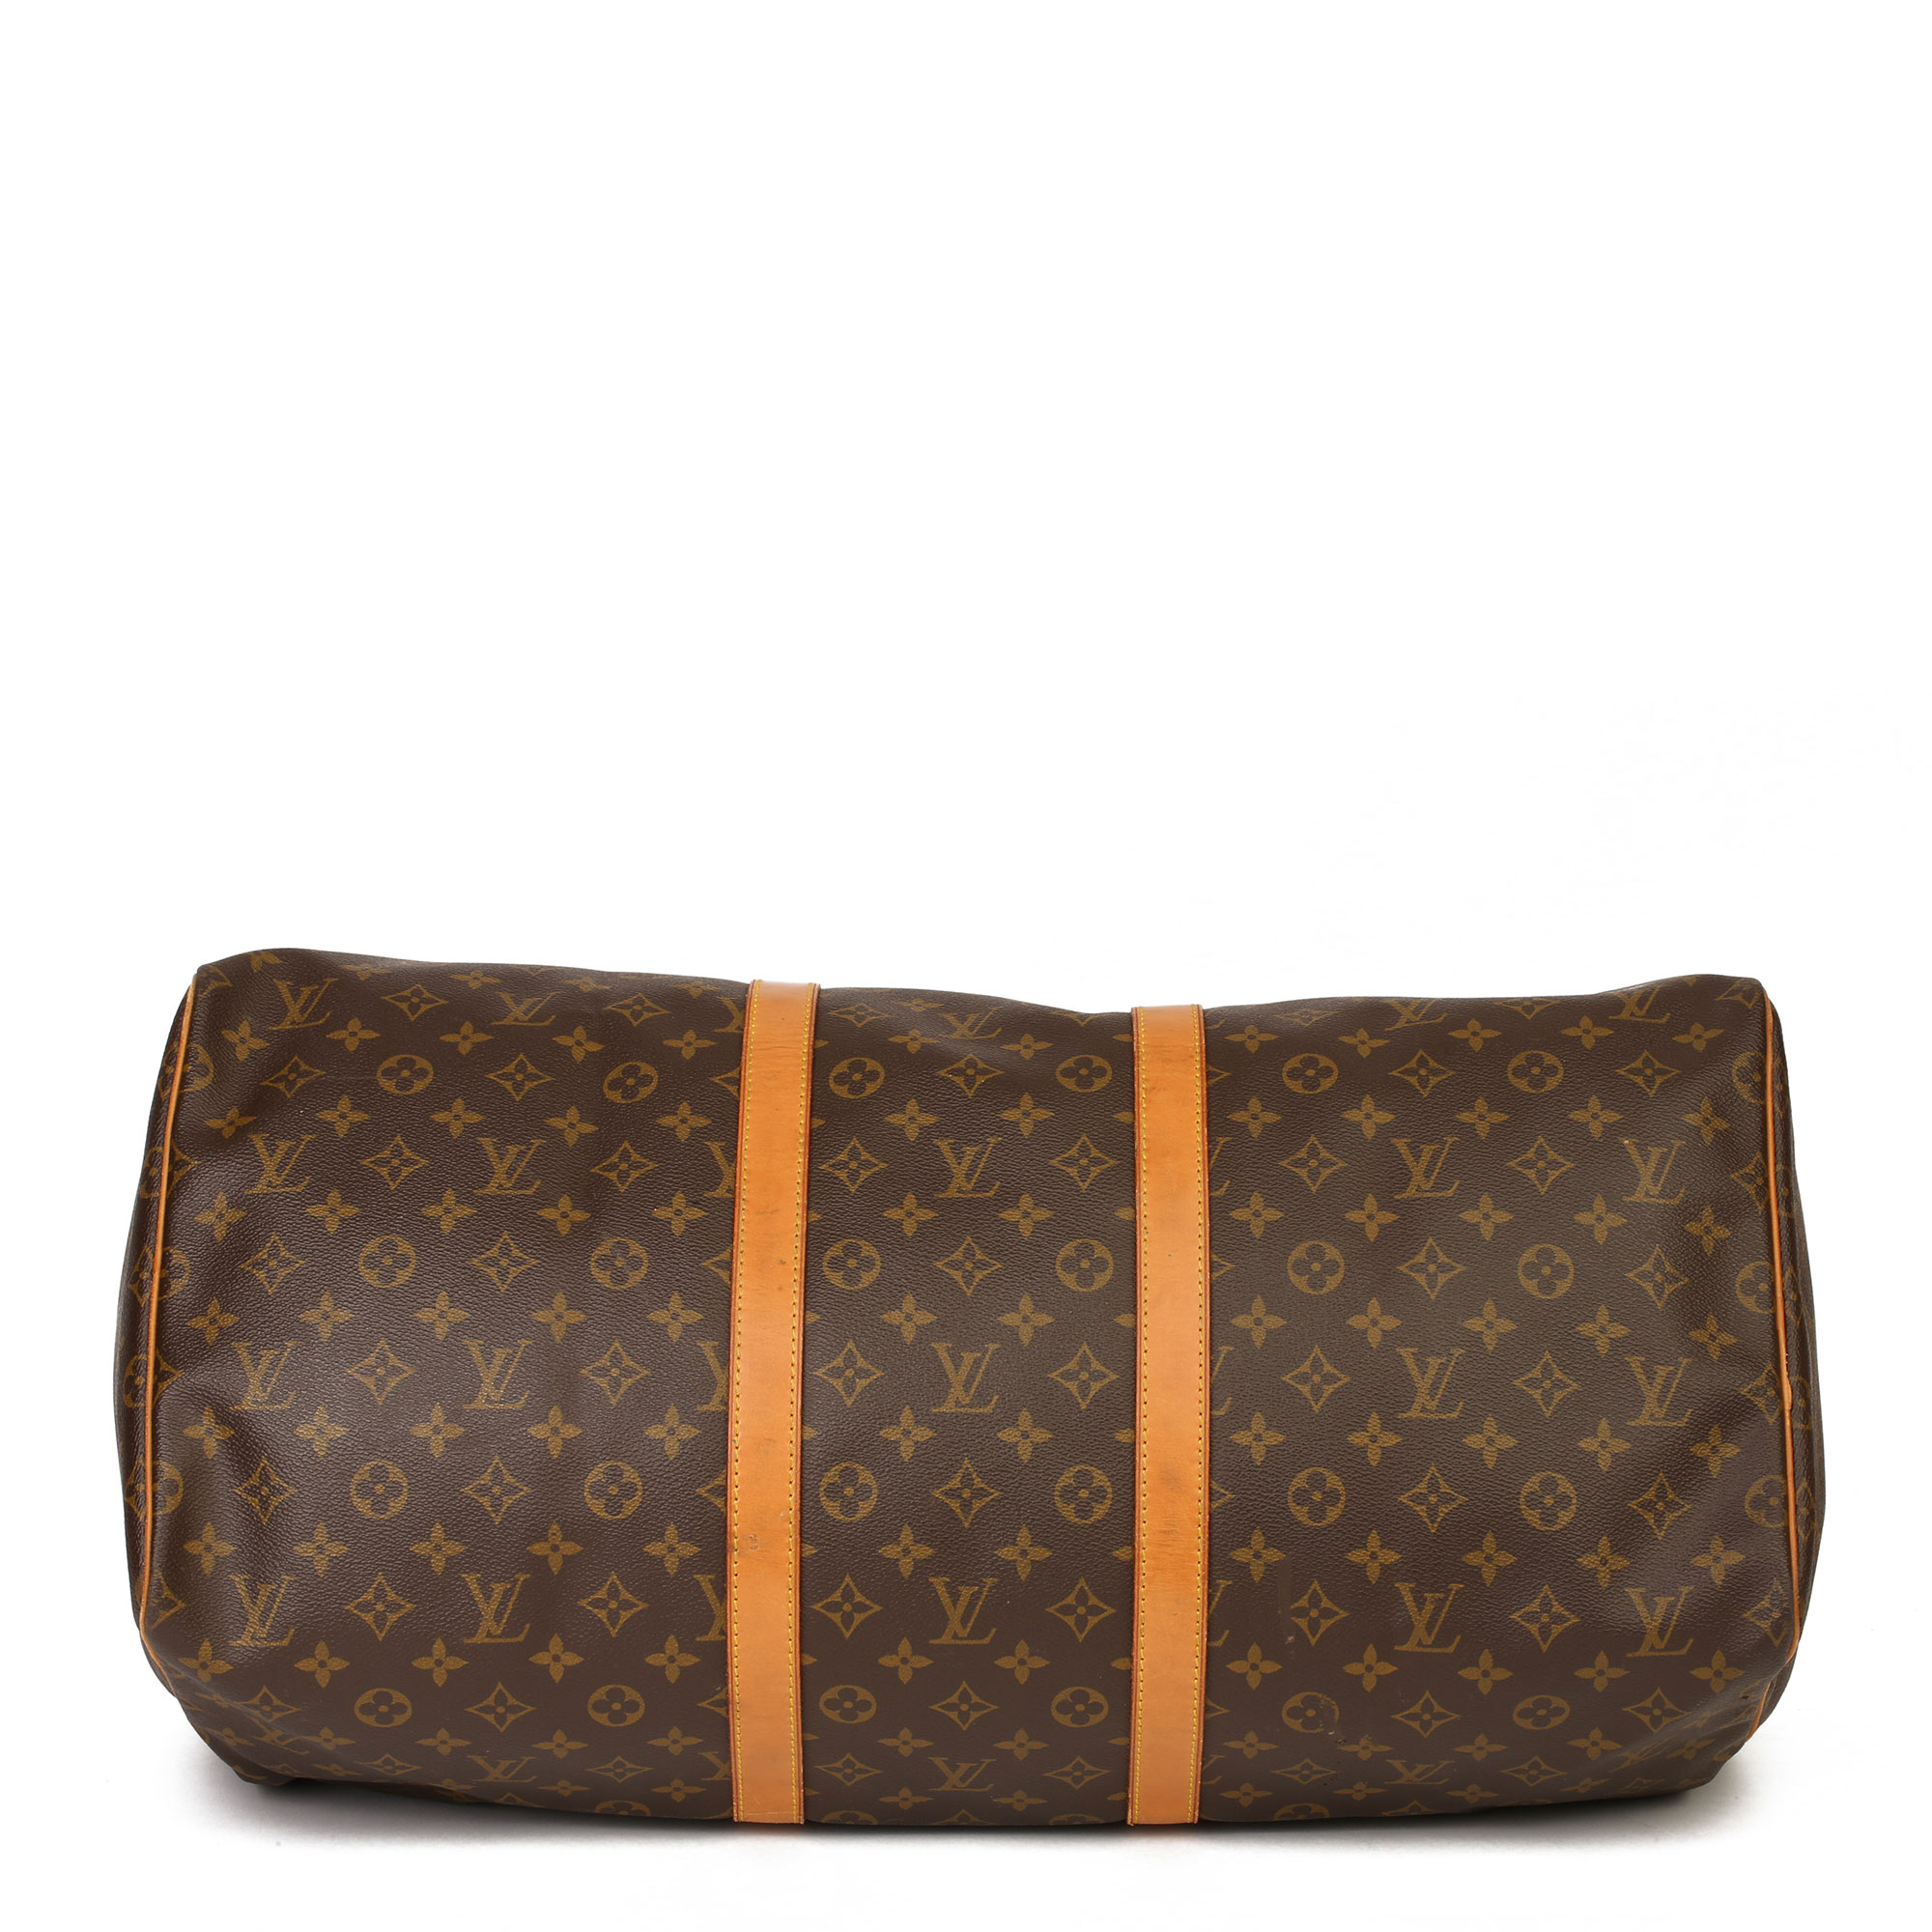 Louis Vuitton Brown Monogram Coated Canvas & Vachetta Leather Vintage Keepall 55 - Image 11 of 14